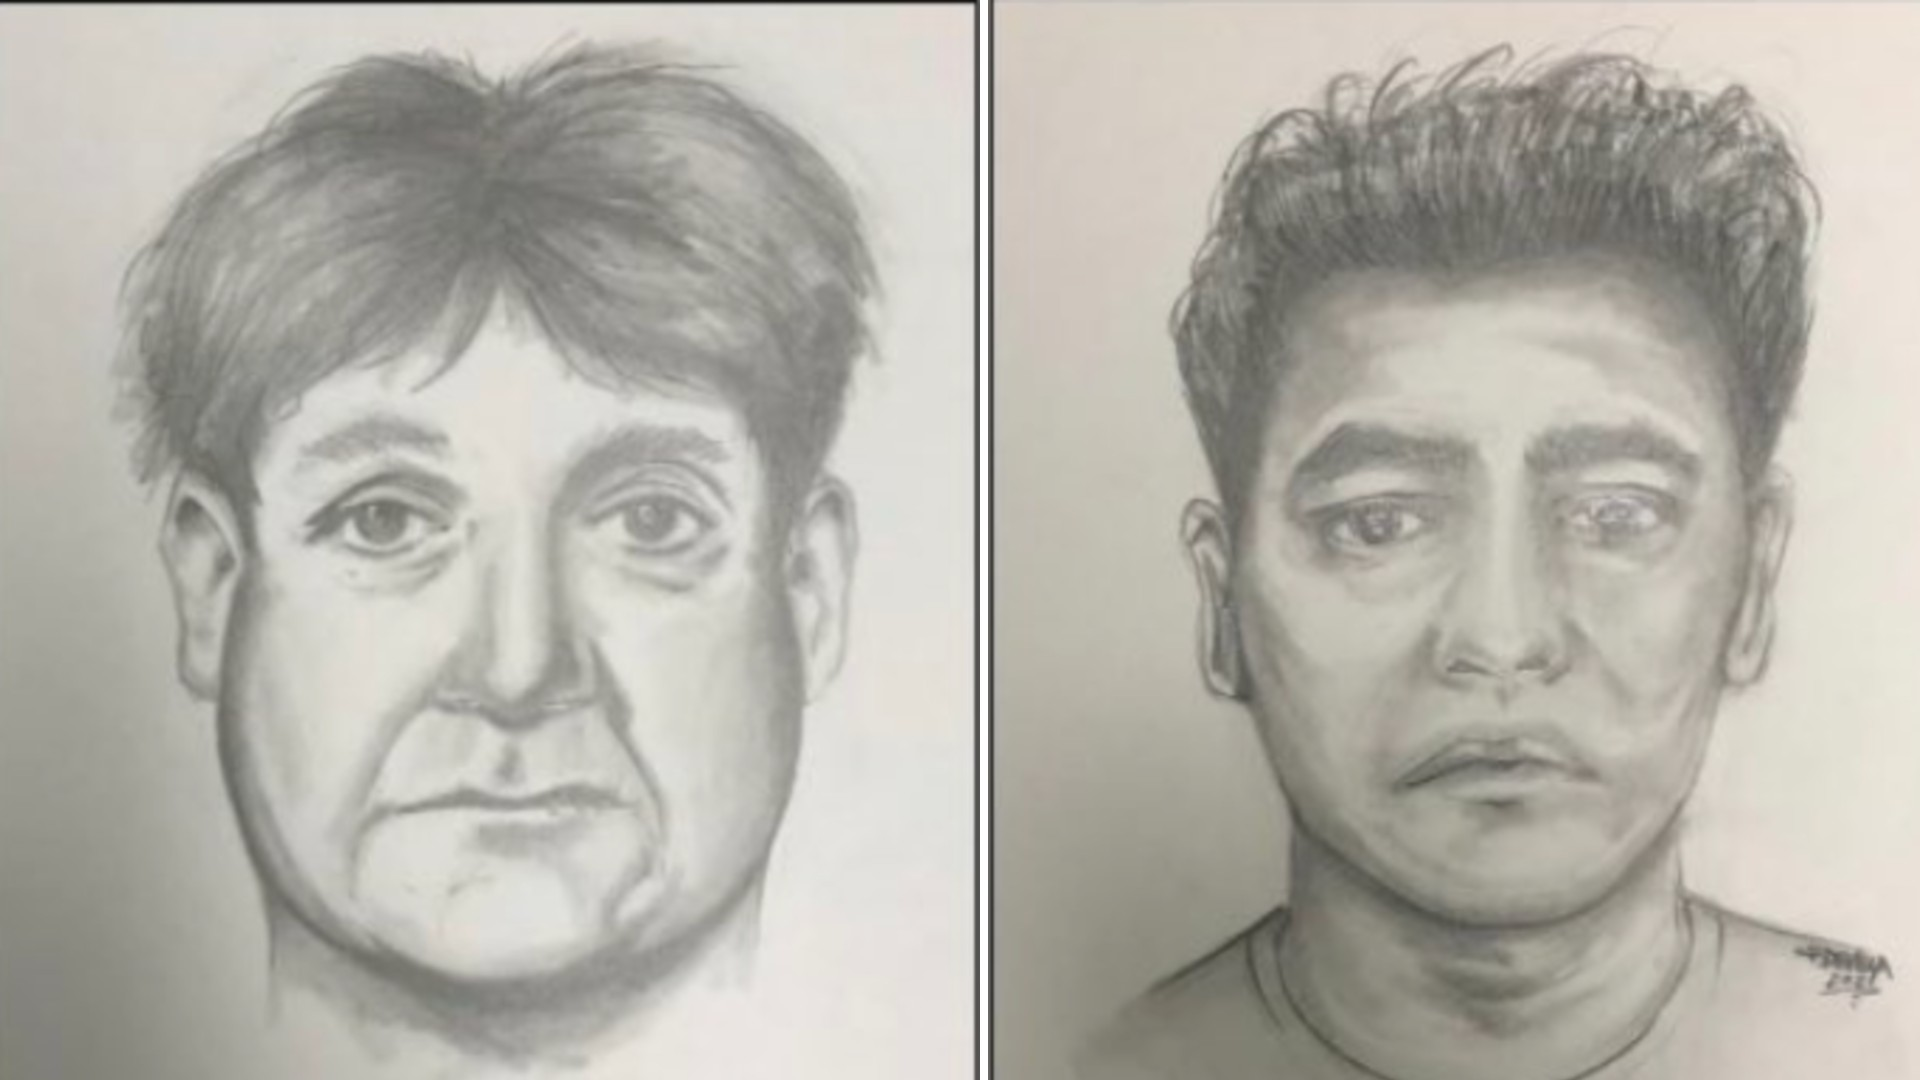 The Orange County Sheriff's Department released these sketches, seeking the public's help to identity the two men accused of following a 15-year-old girl in Rancho Santa Margarita on May 4, 2021. The driver of the vehicle is on the left and the passenger on the right.